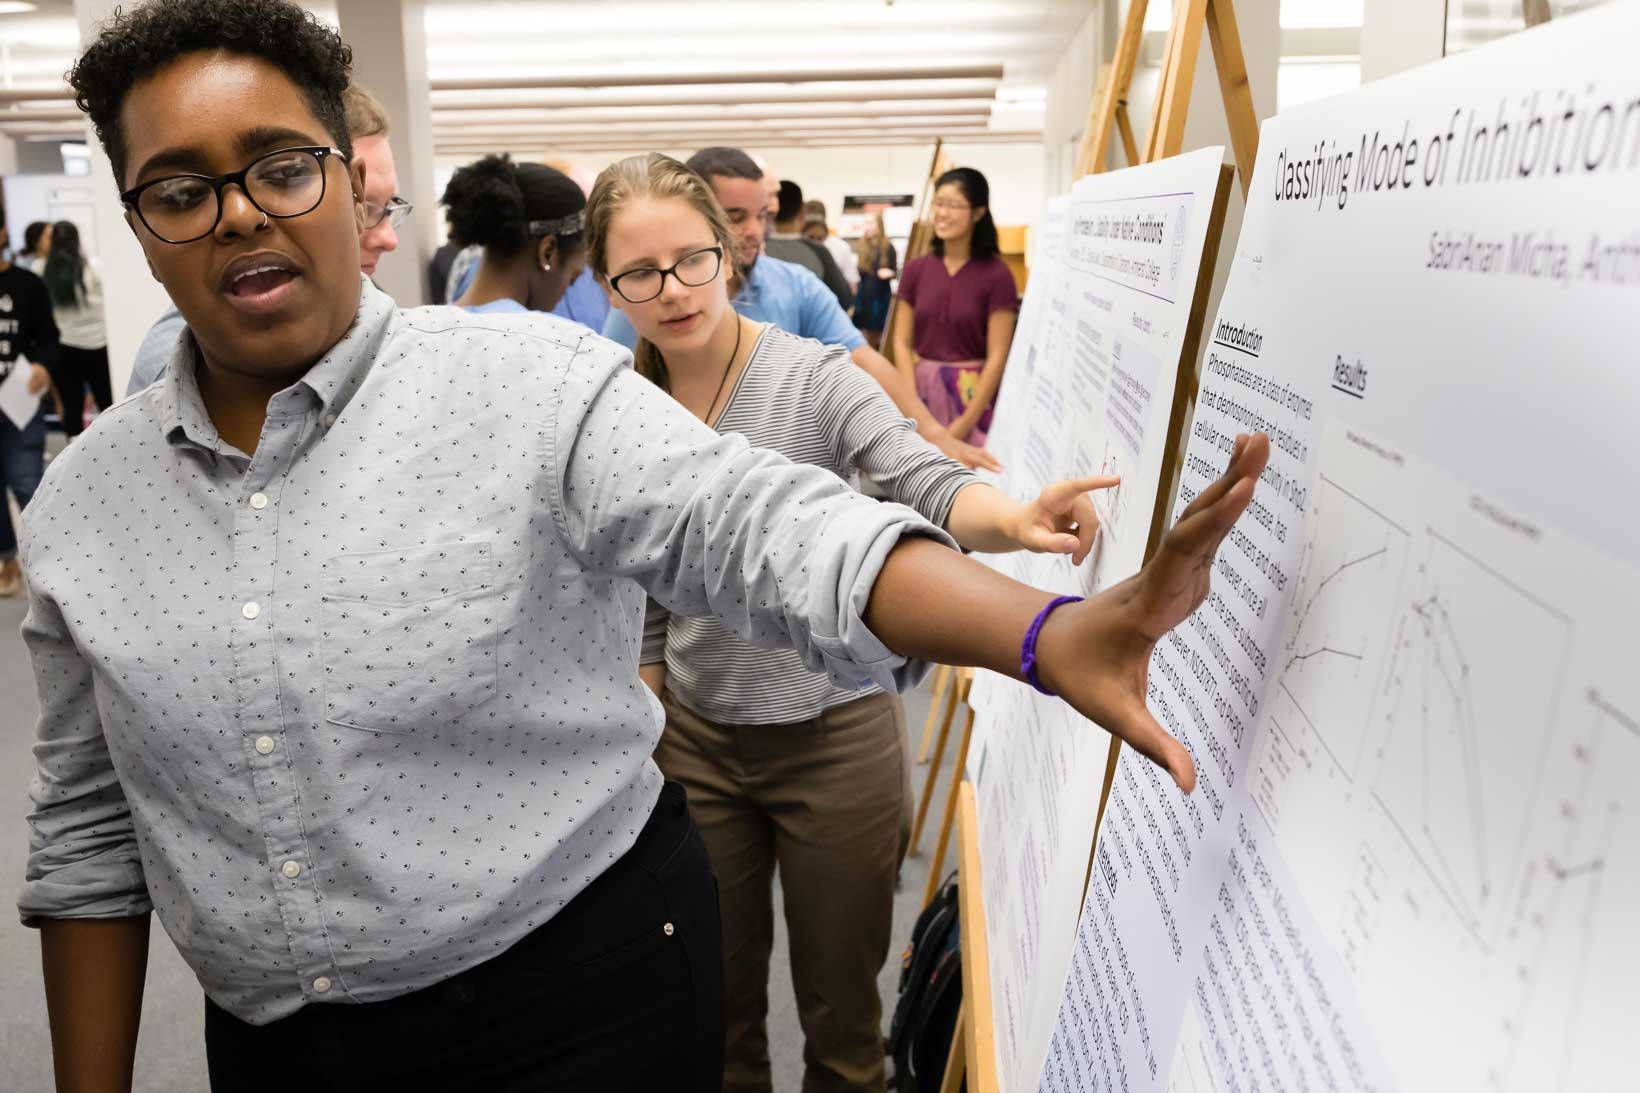 SabriAnan Micha '19 explains their science project to fellow students and professors.